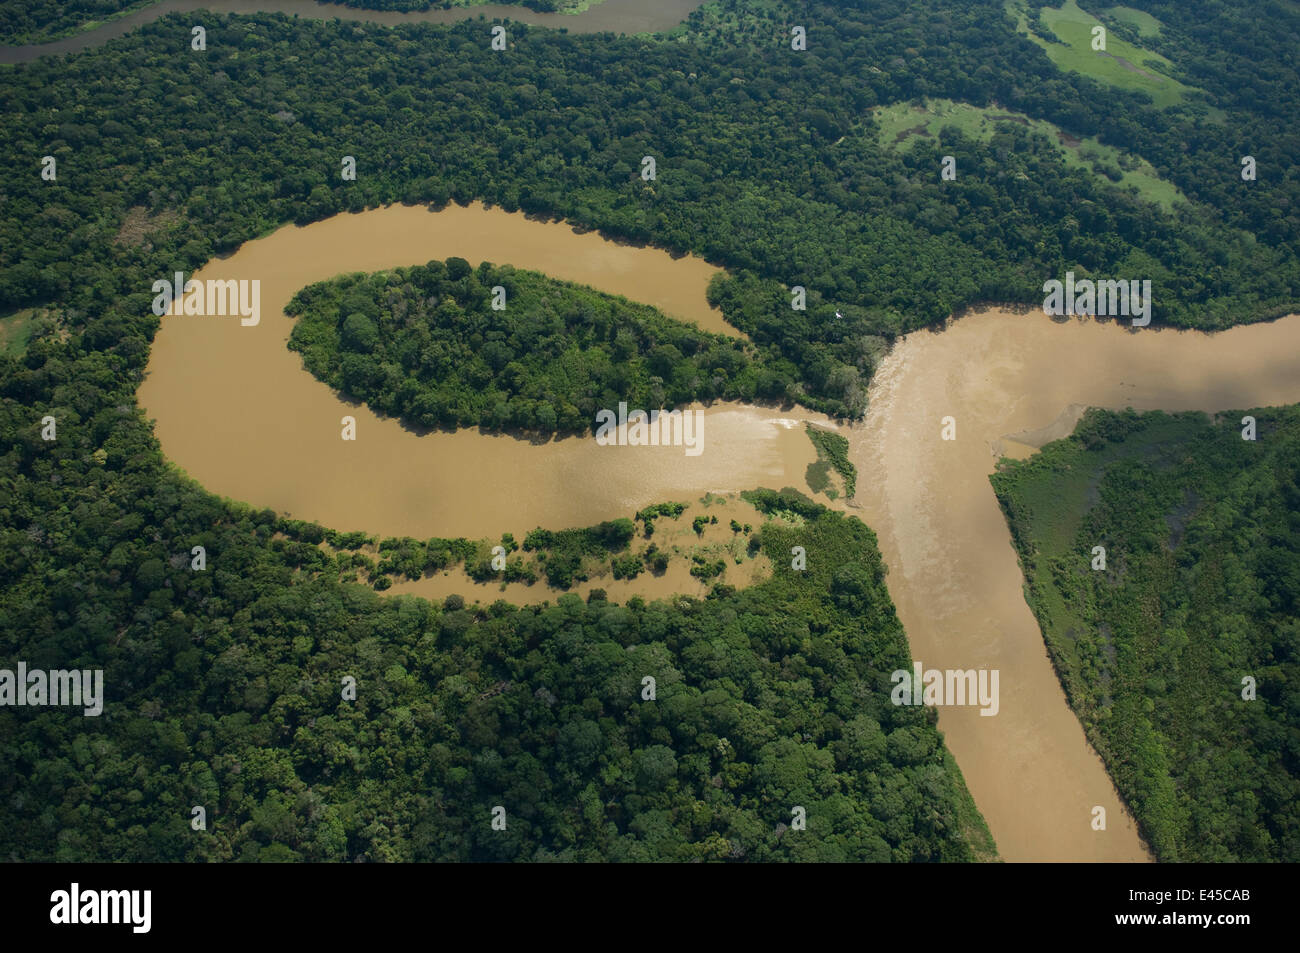 Aerial view of river meander and formation of ox-bow lake, in Amazon 'várzea' Rainforest during the - Stock Image